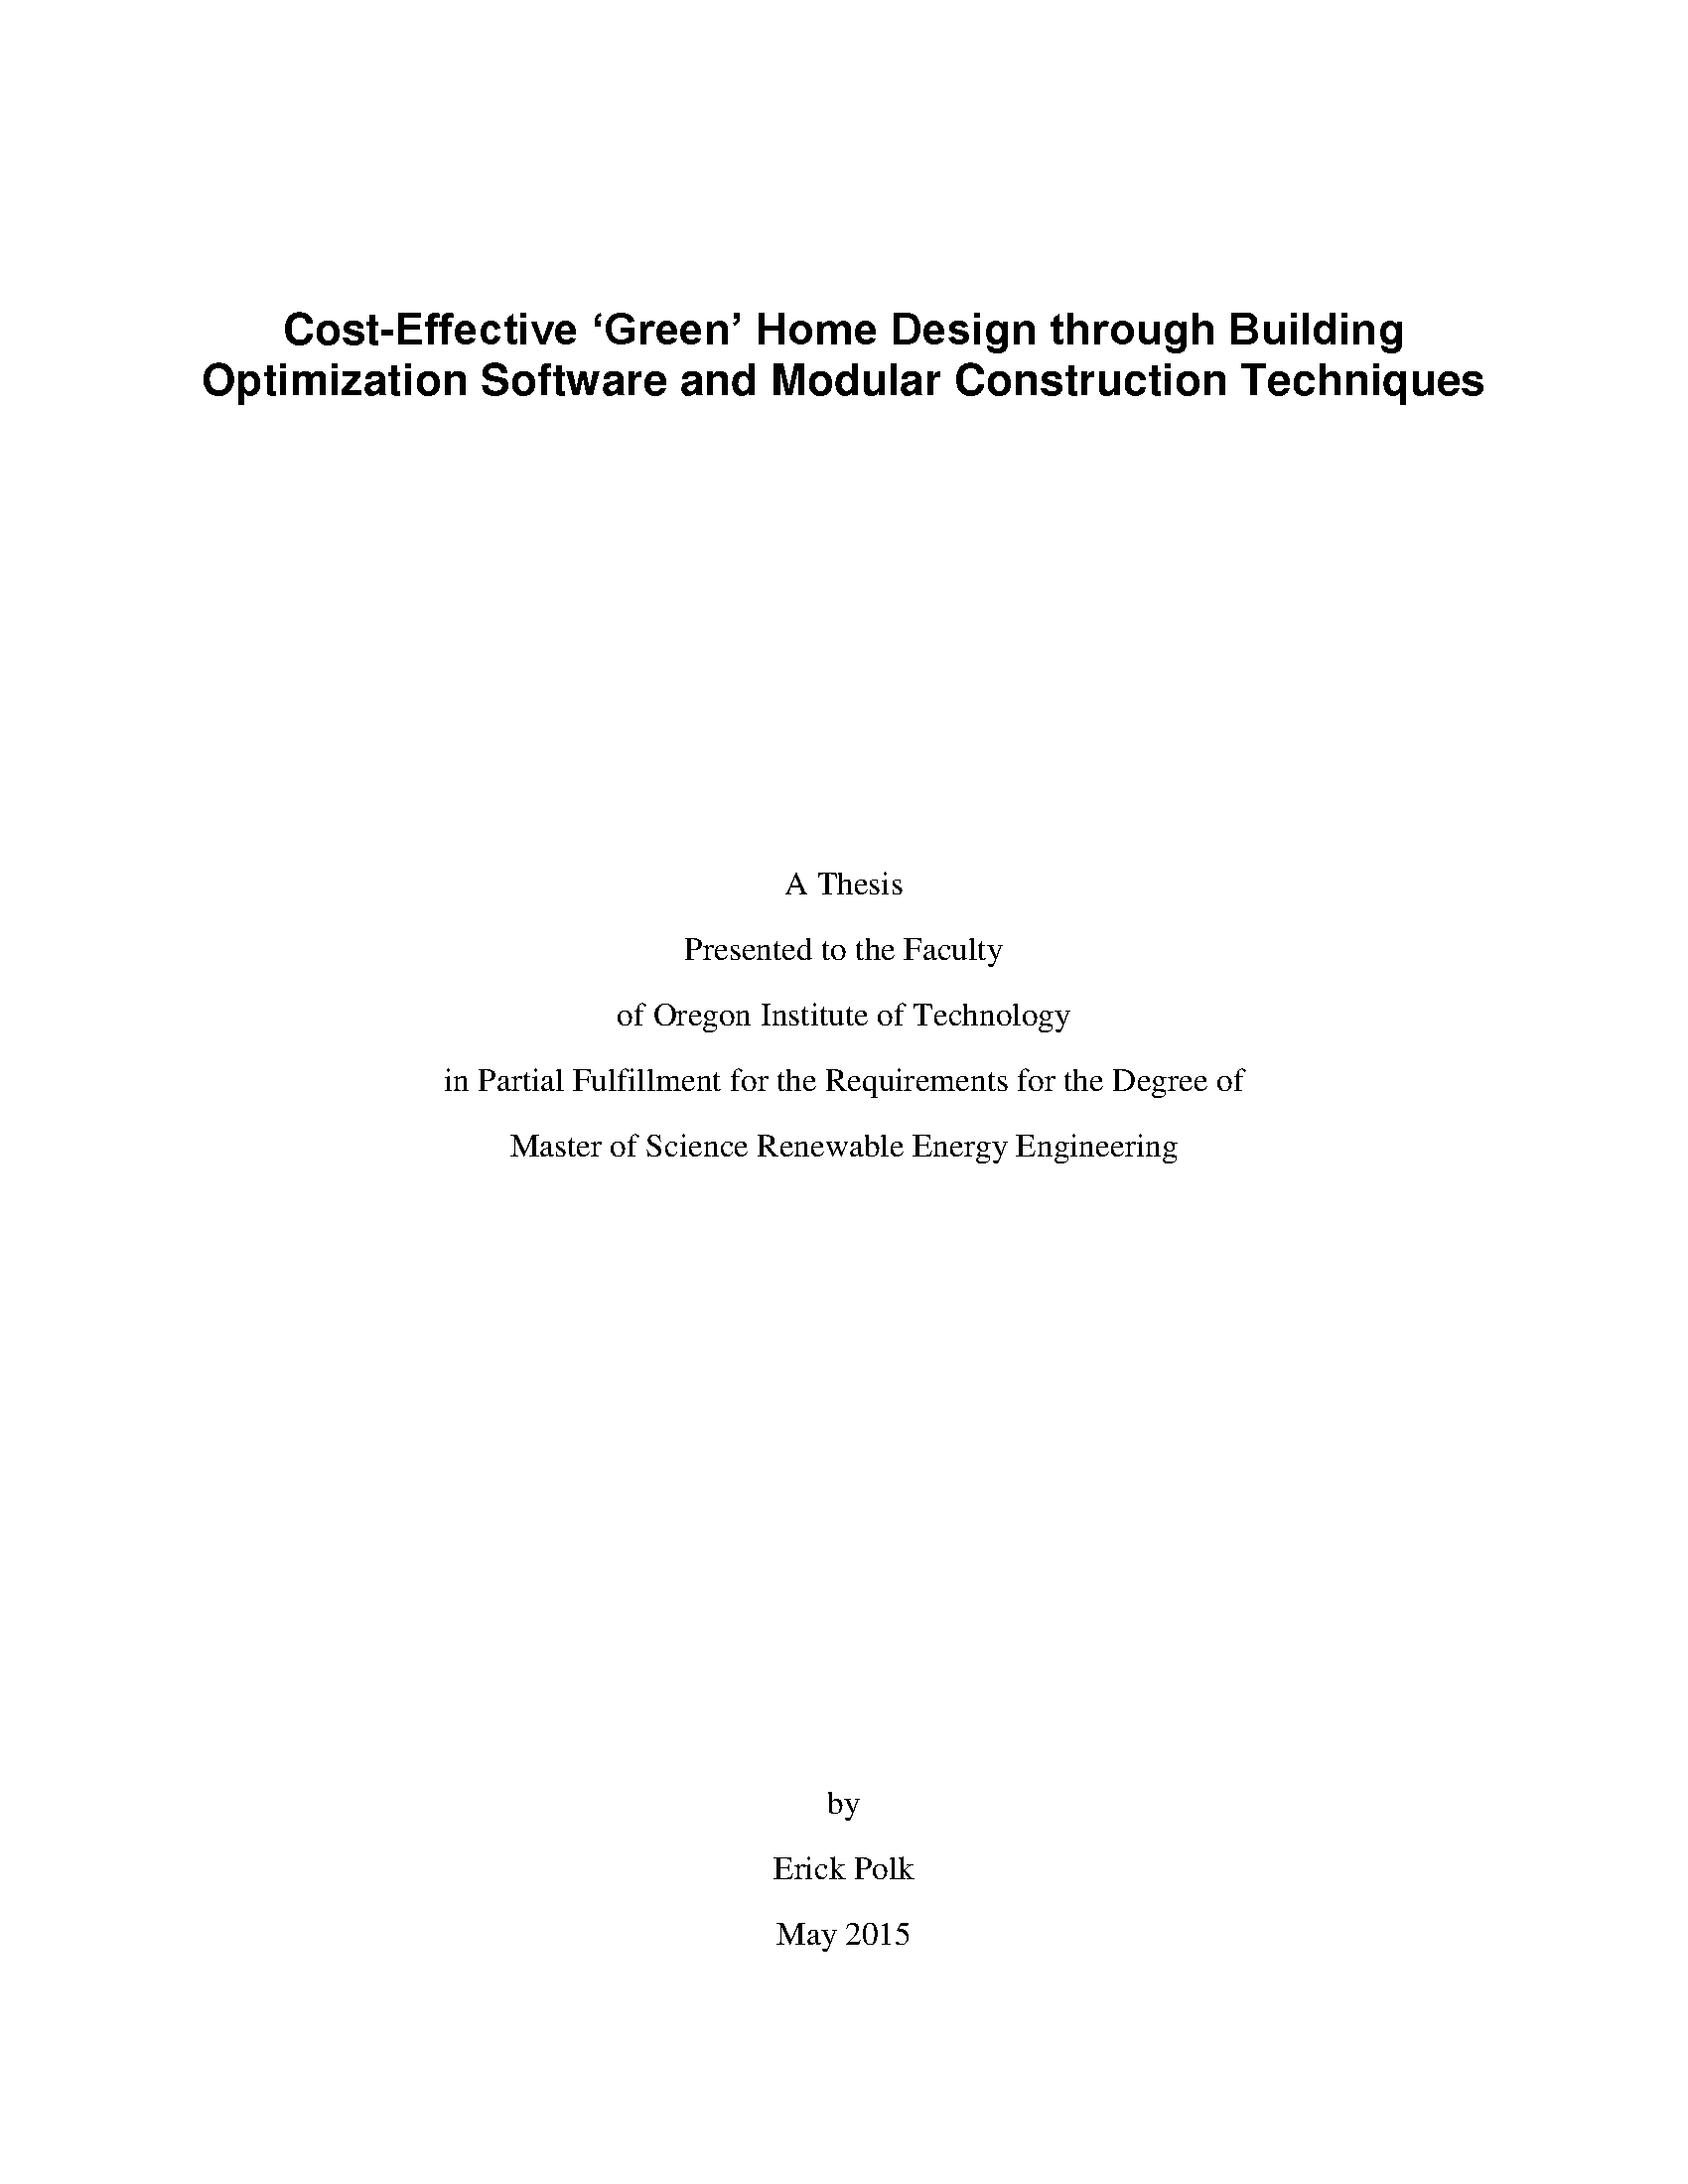 Cost Effective Green Home Design Through Building Optimization Software And Modular Construction Techniques Graduate Theses And Projects Digital Collections